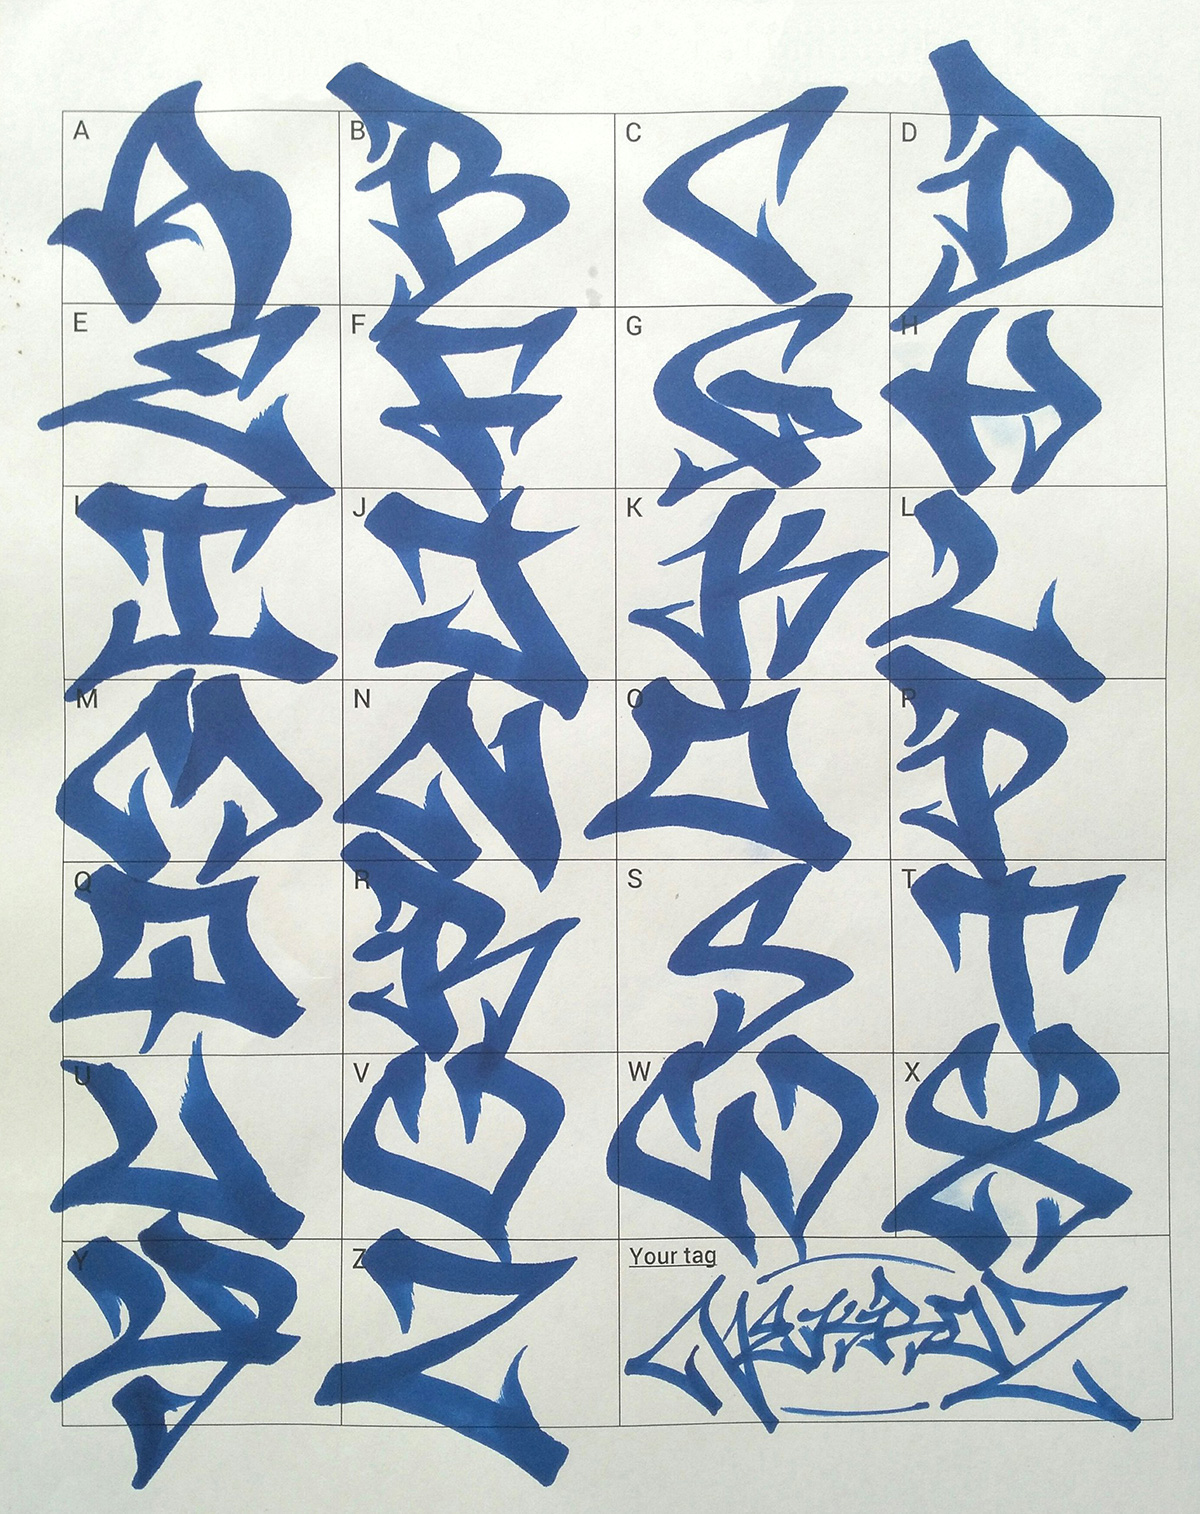 graffiti letters 61 graffiti artists share their styles bombing